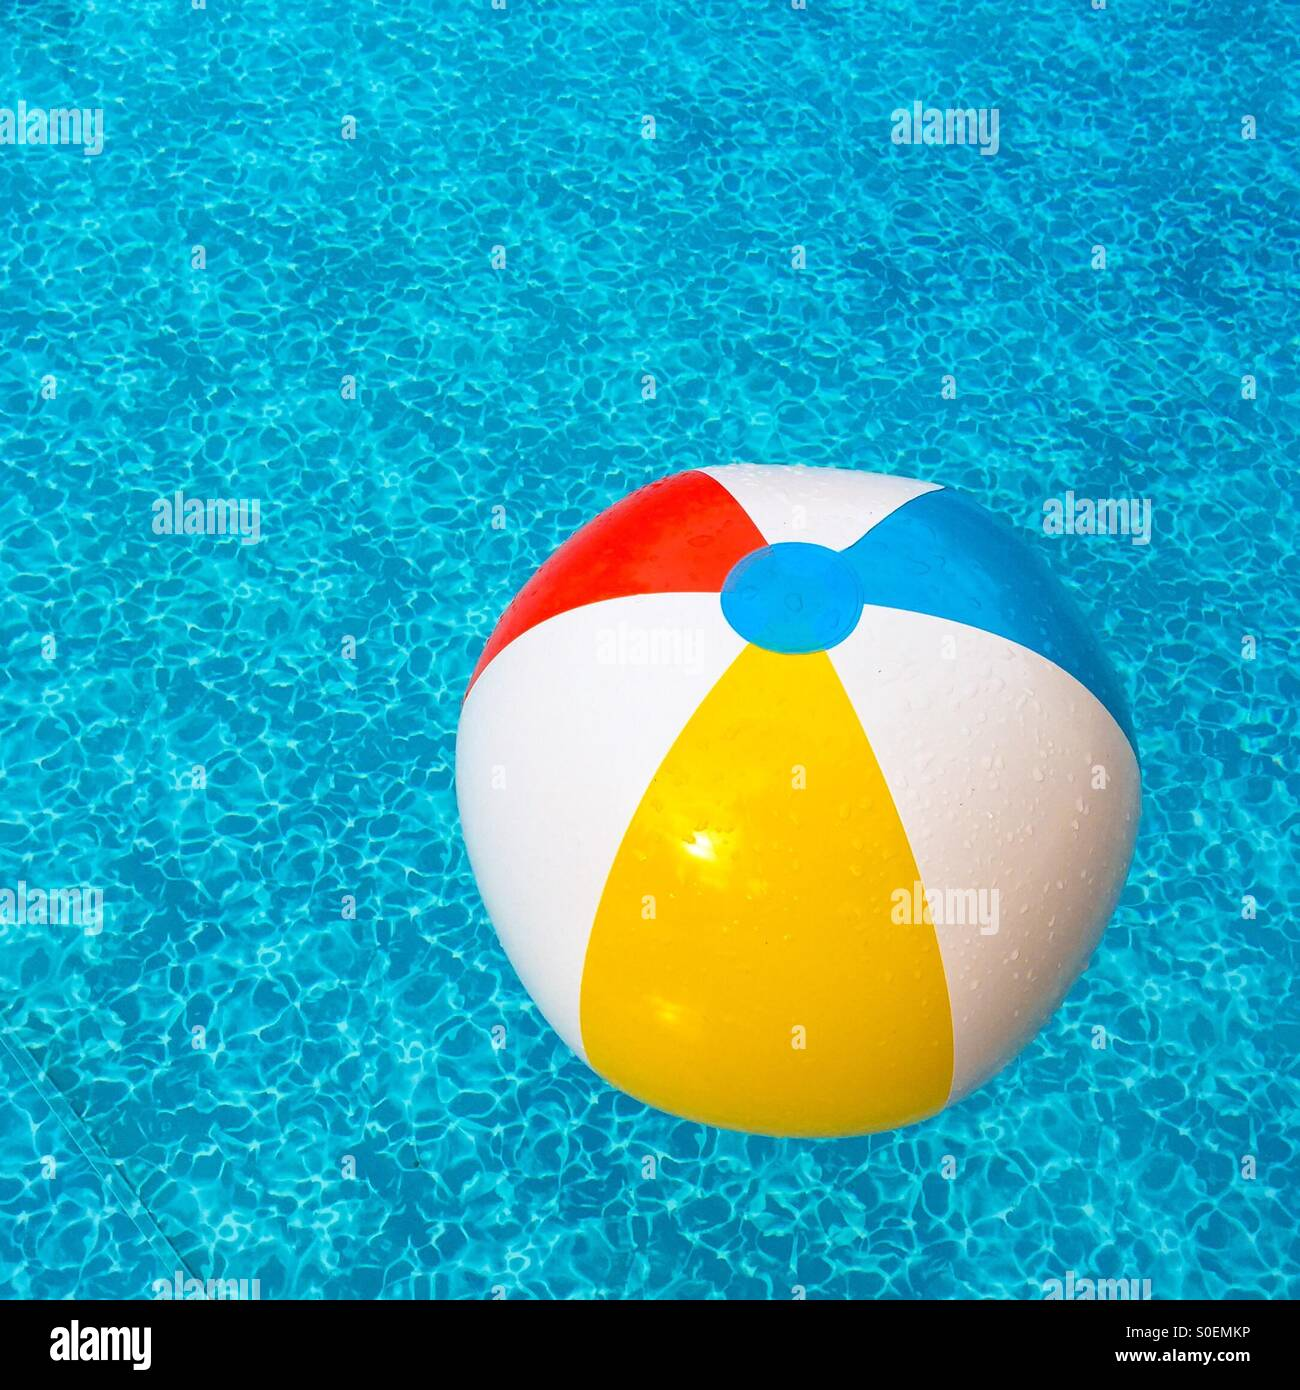 Beach ball in outdoor pool. (Yellow side dominant). - Stock Image